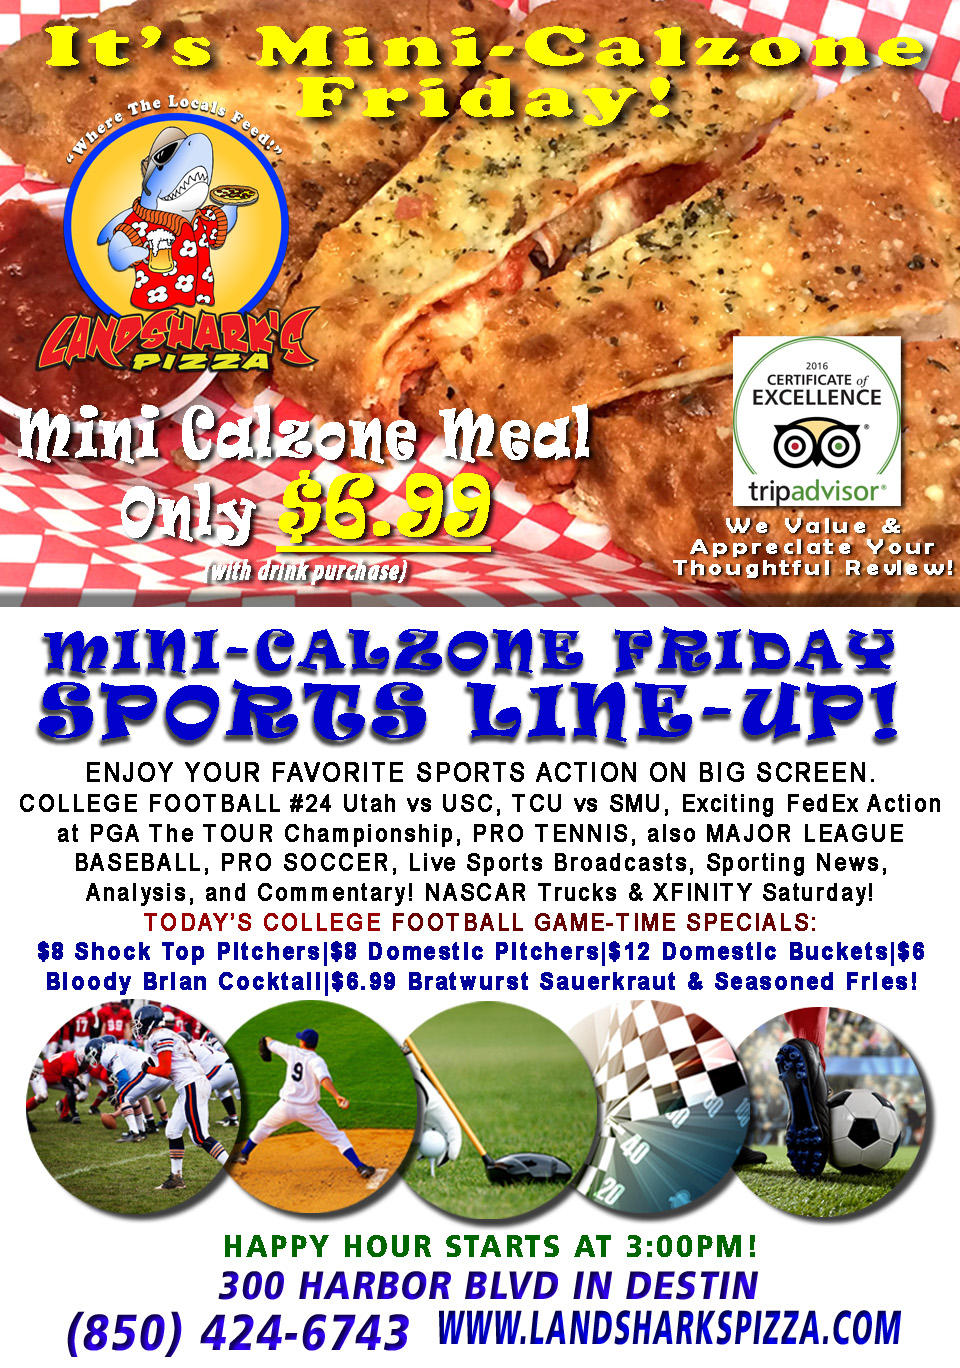 best-calzones-in-destin-fl-at-landsharks-with-college-football-09-23-16a